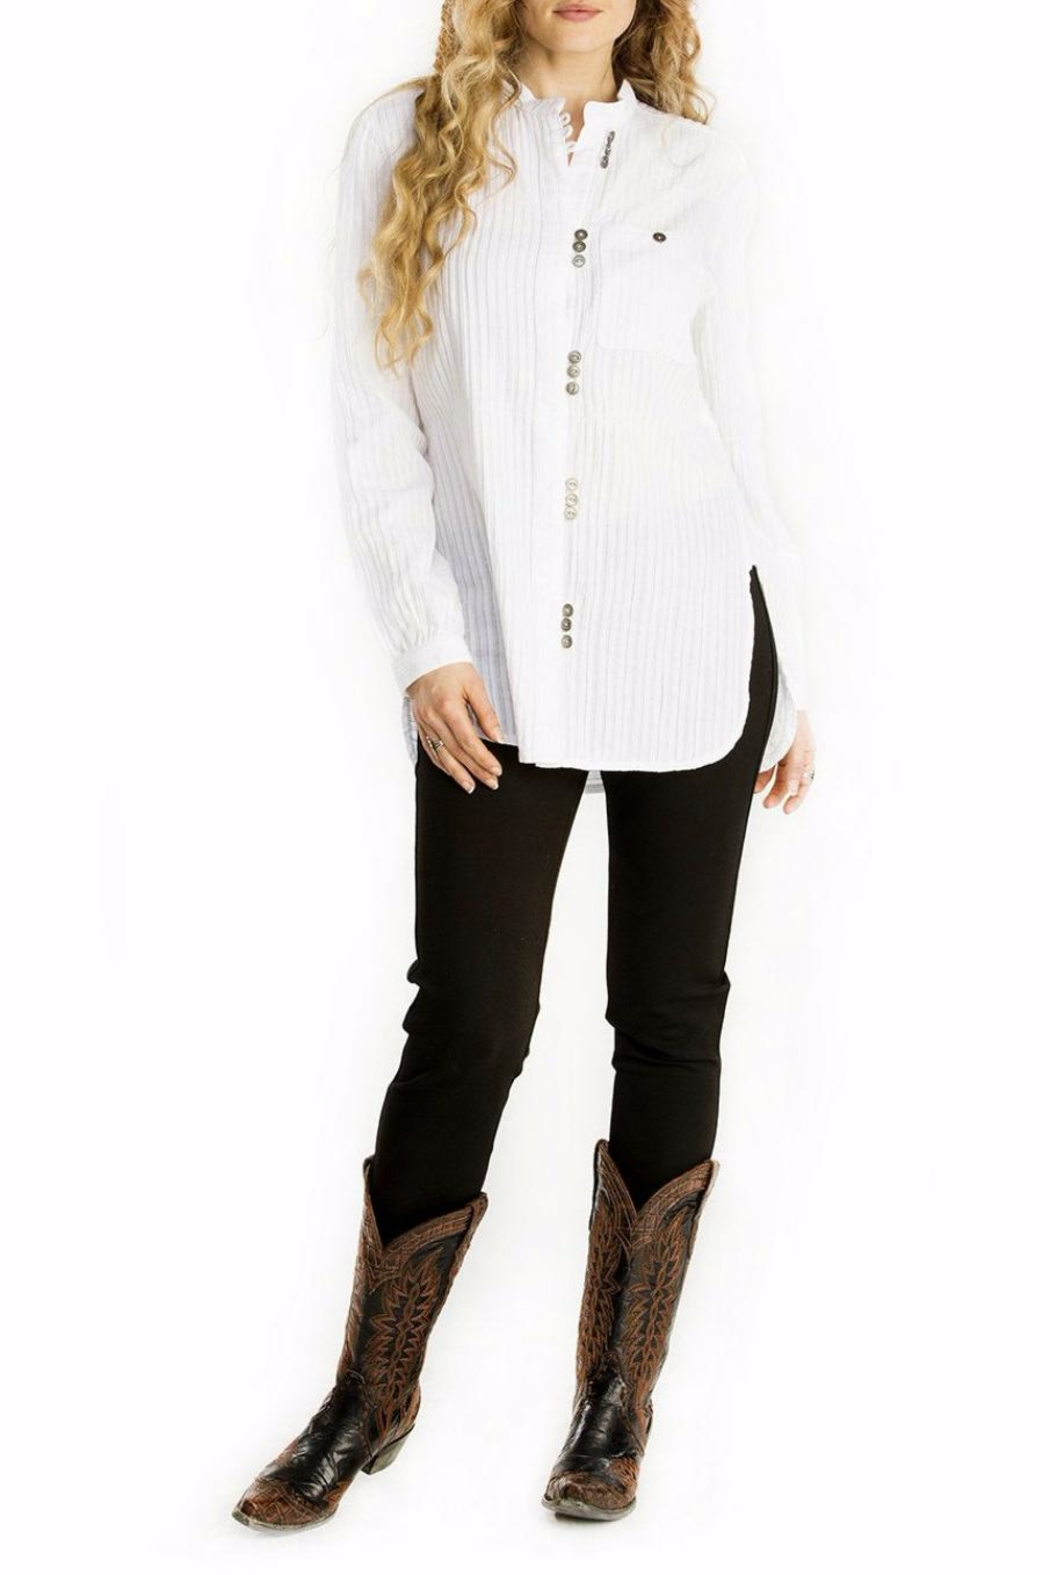 Double D Ranchwear Mandarin Collar Tunic - Main Image